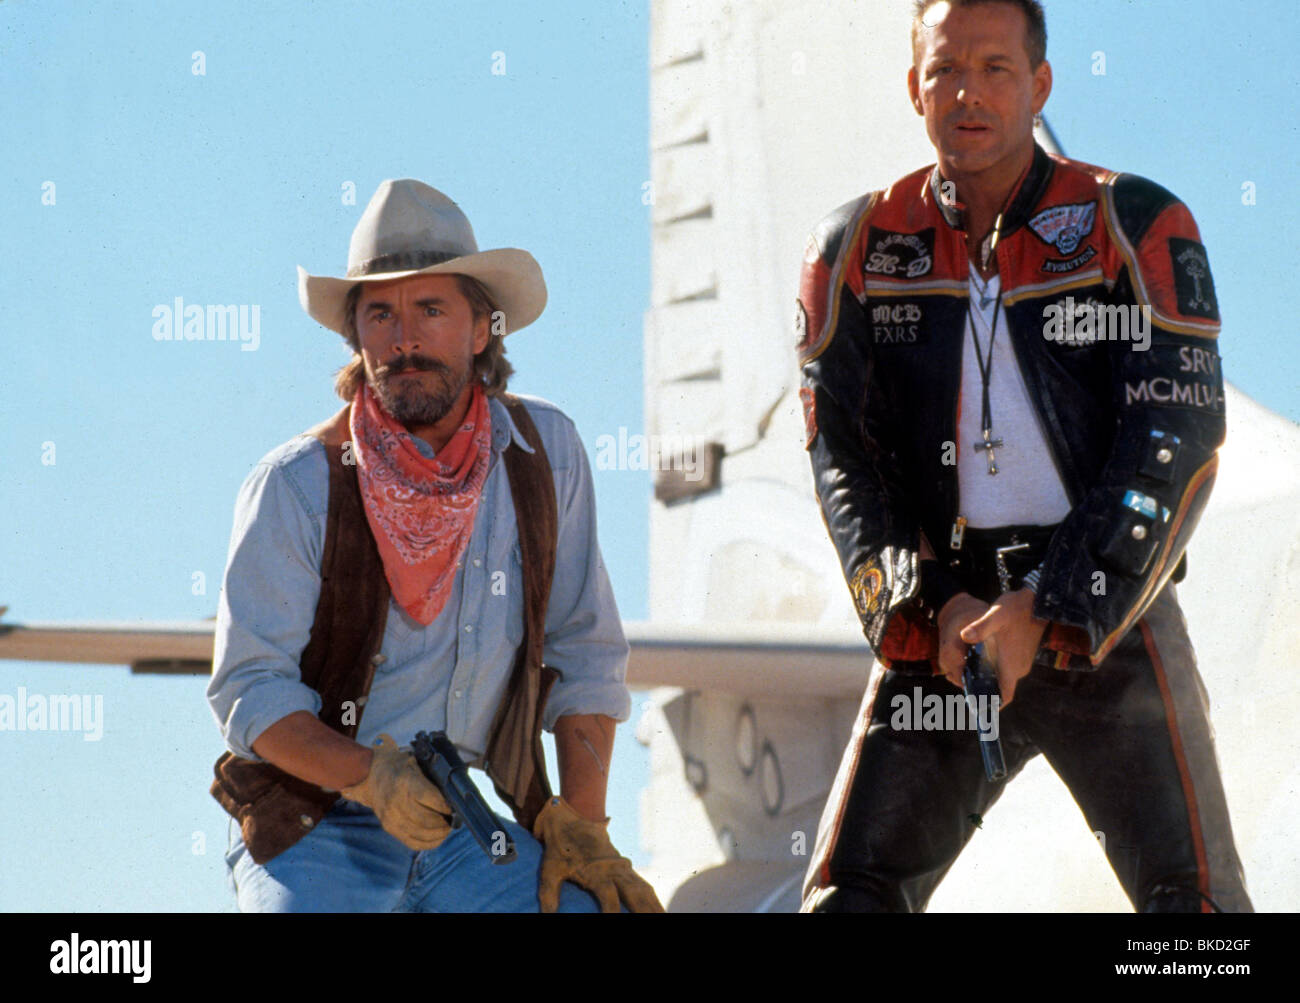 HARLEY DAVIDSON AND THE MARLBORO MAN 1991 DON JOHNSON MICKEY